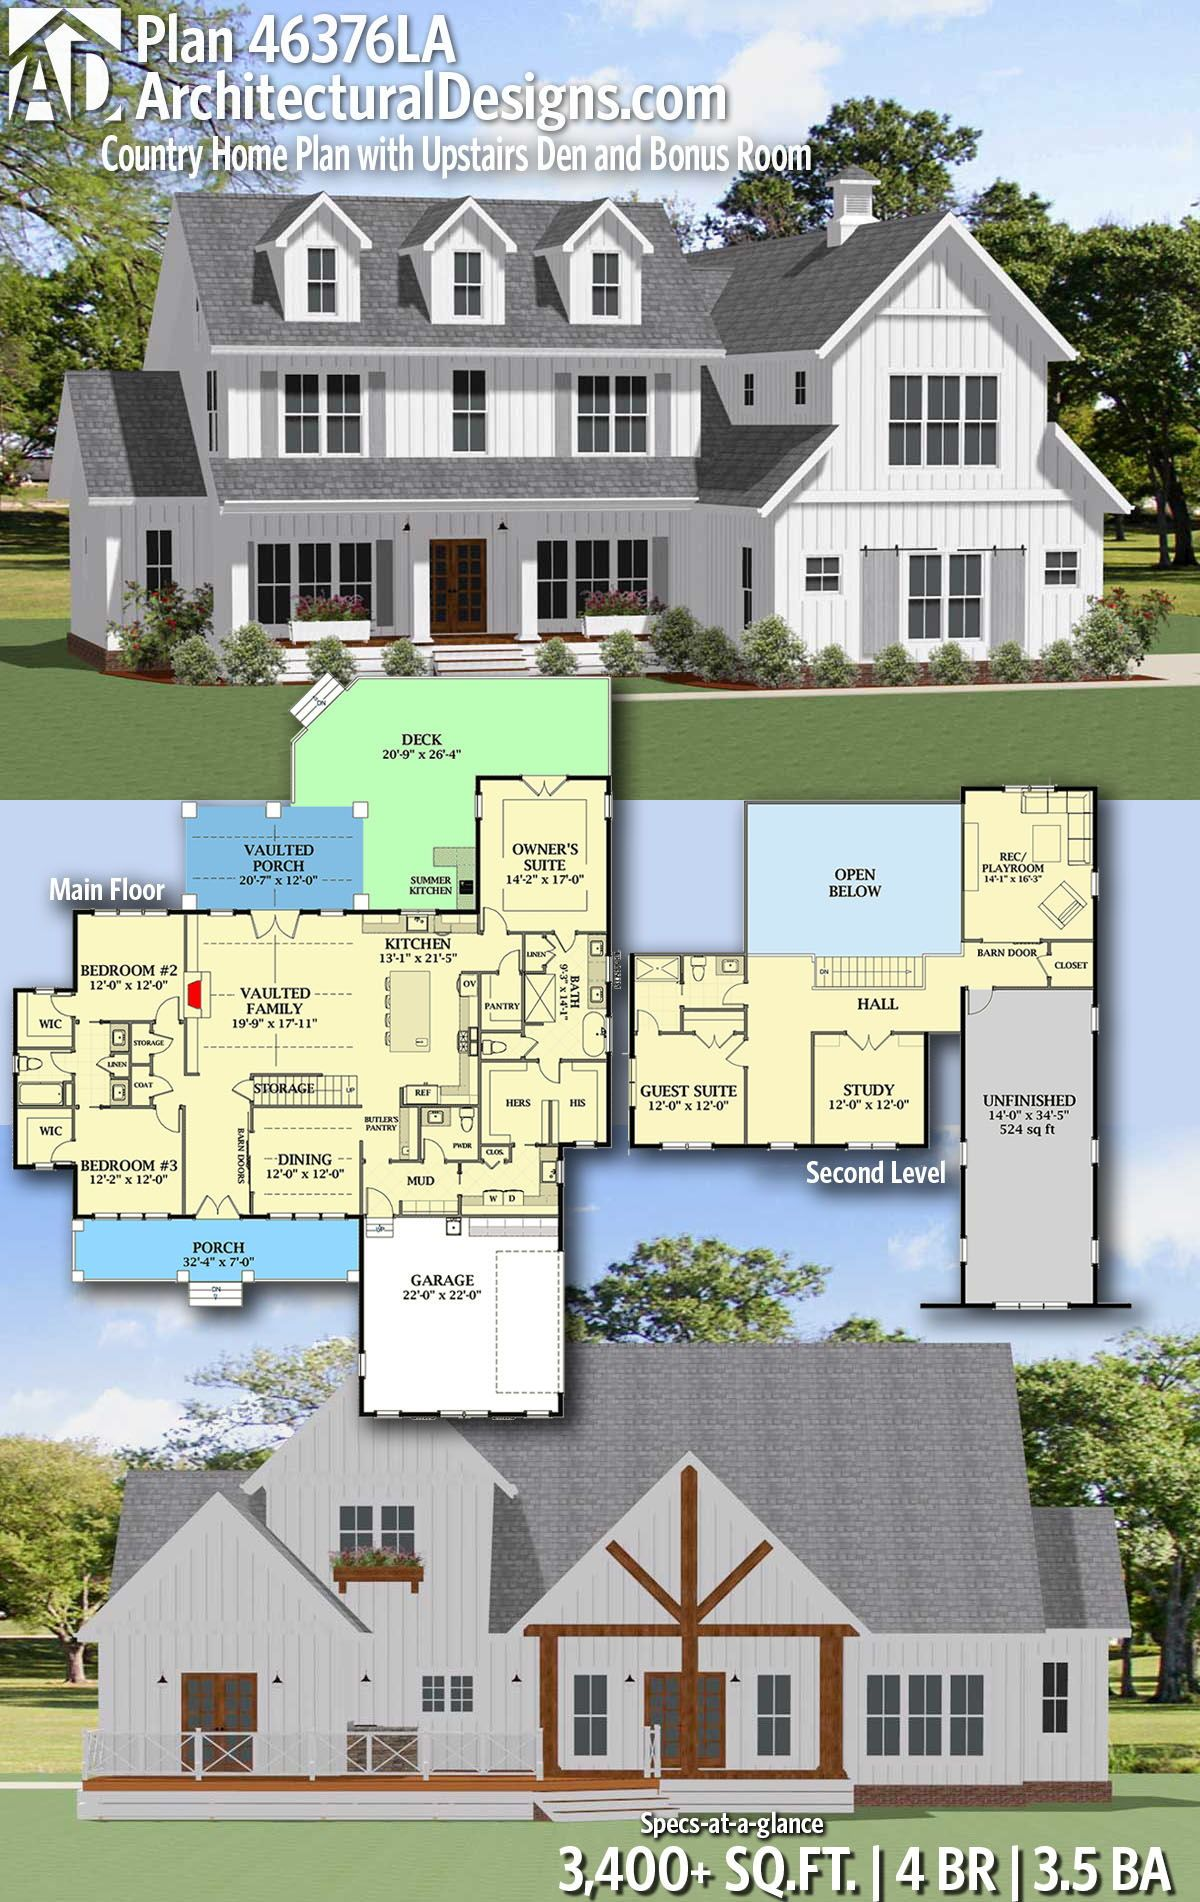 Plan 46376la Country Home Plan With Upstairs Den And Bonus Room House Plans Farmhouse Country House Plans New House Plans